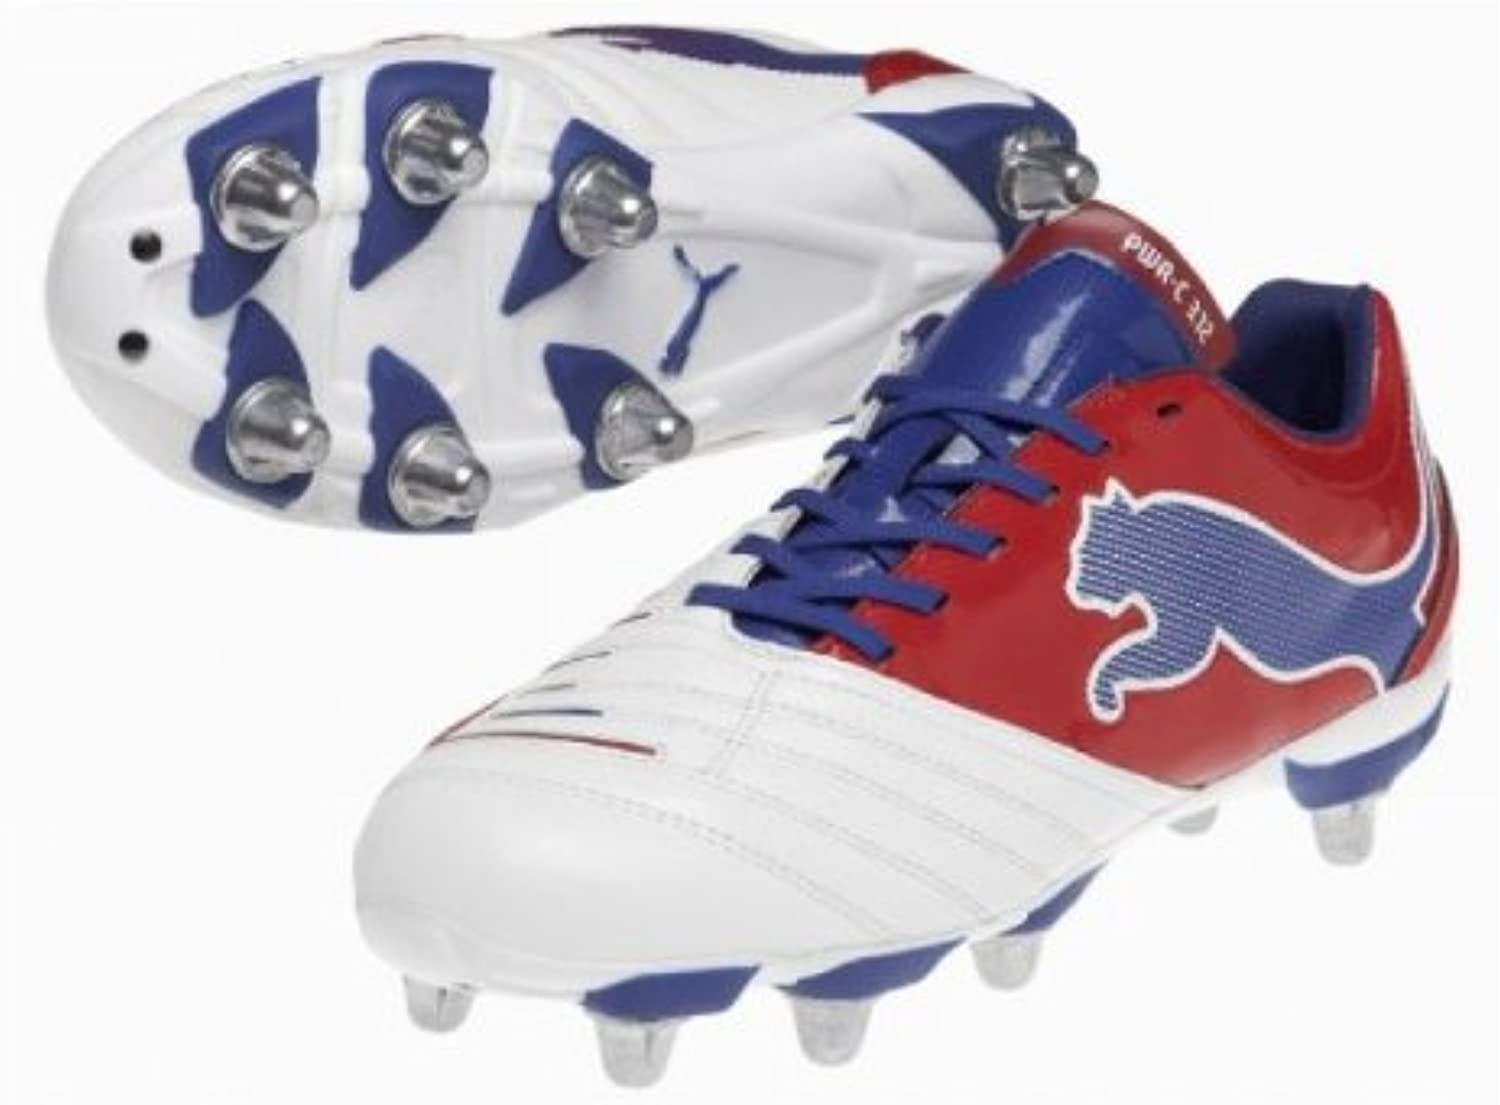 PowerCat 3.12 SG H8 Rugby Boots White Red Limoges